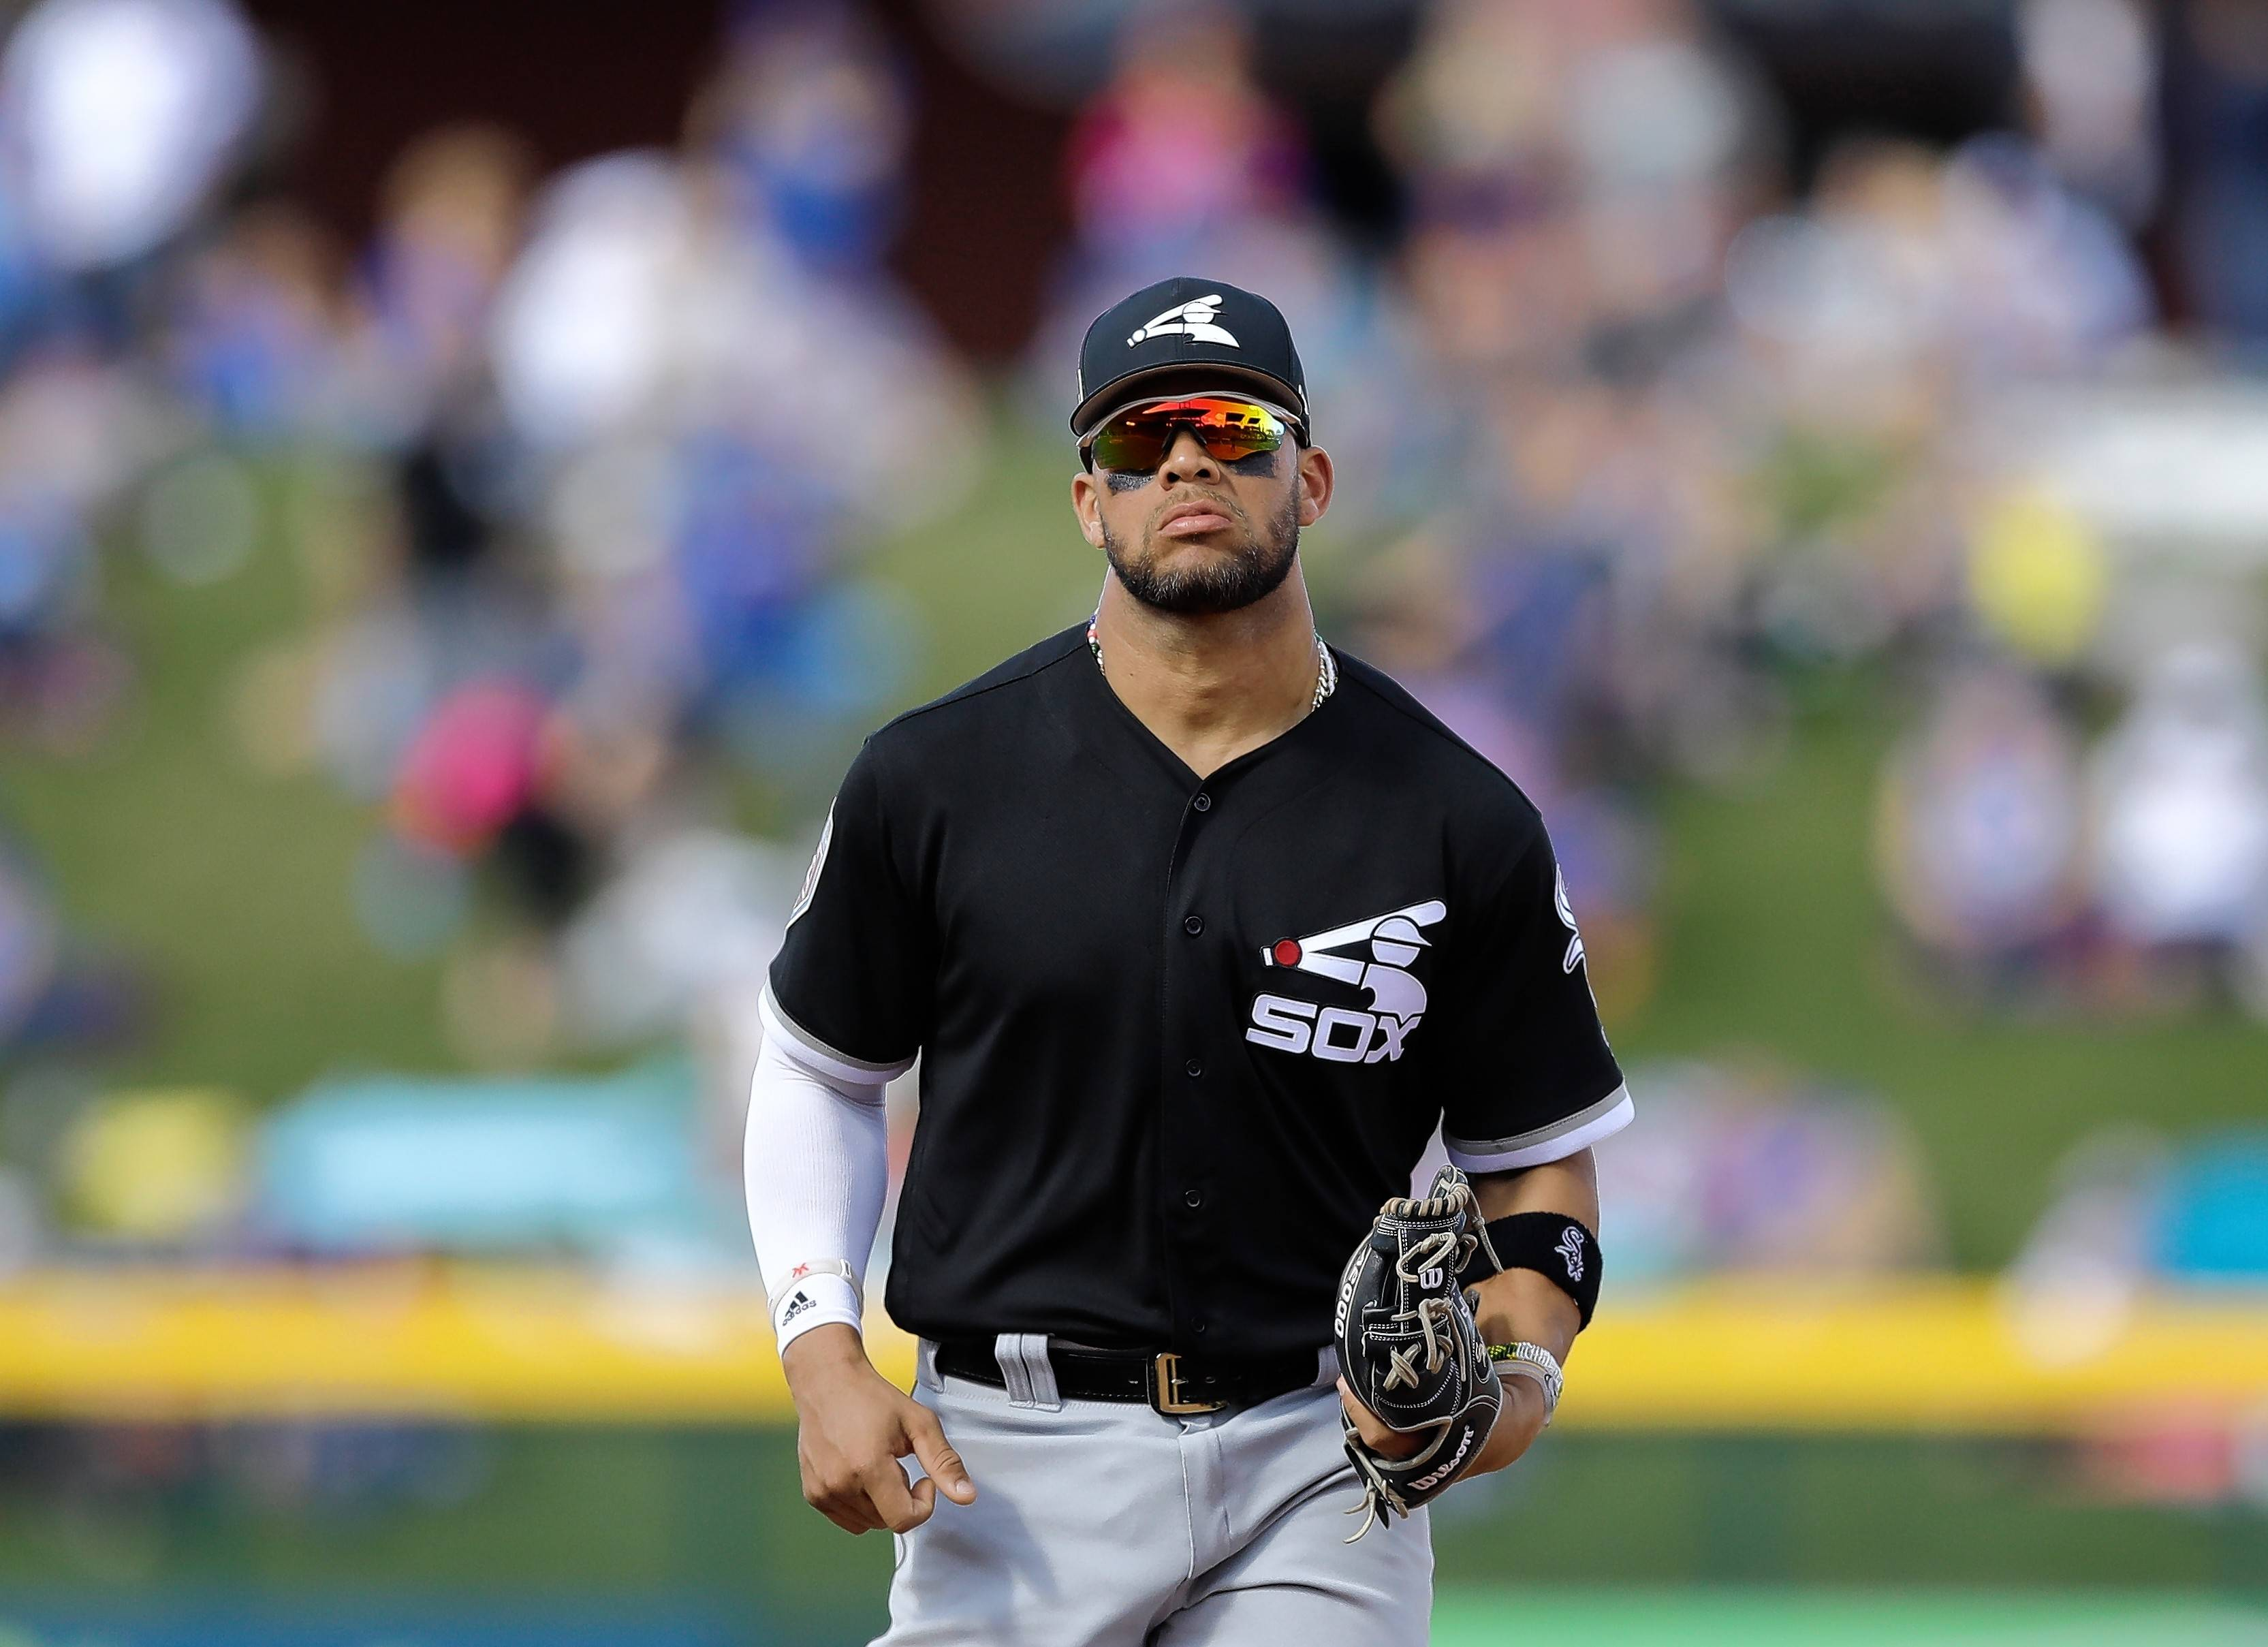 Chicago White Sox second baseman Yoan Moncada runs to the dugout during a spring training baseball game against the Chicago Cubs, Tuesday, Feb. 27, 2018, in Mesa, Ariz.